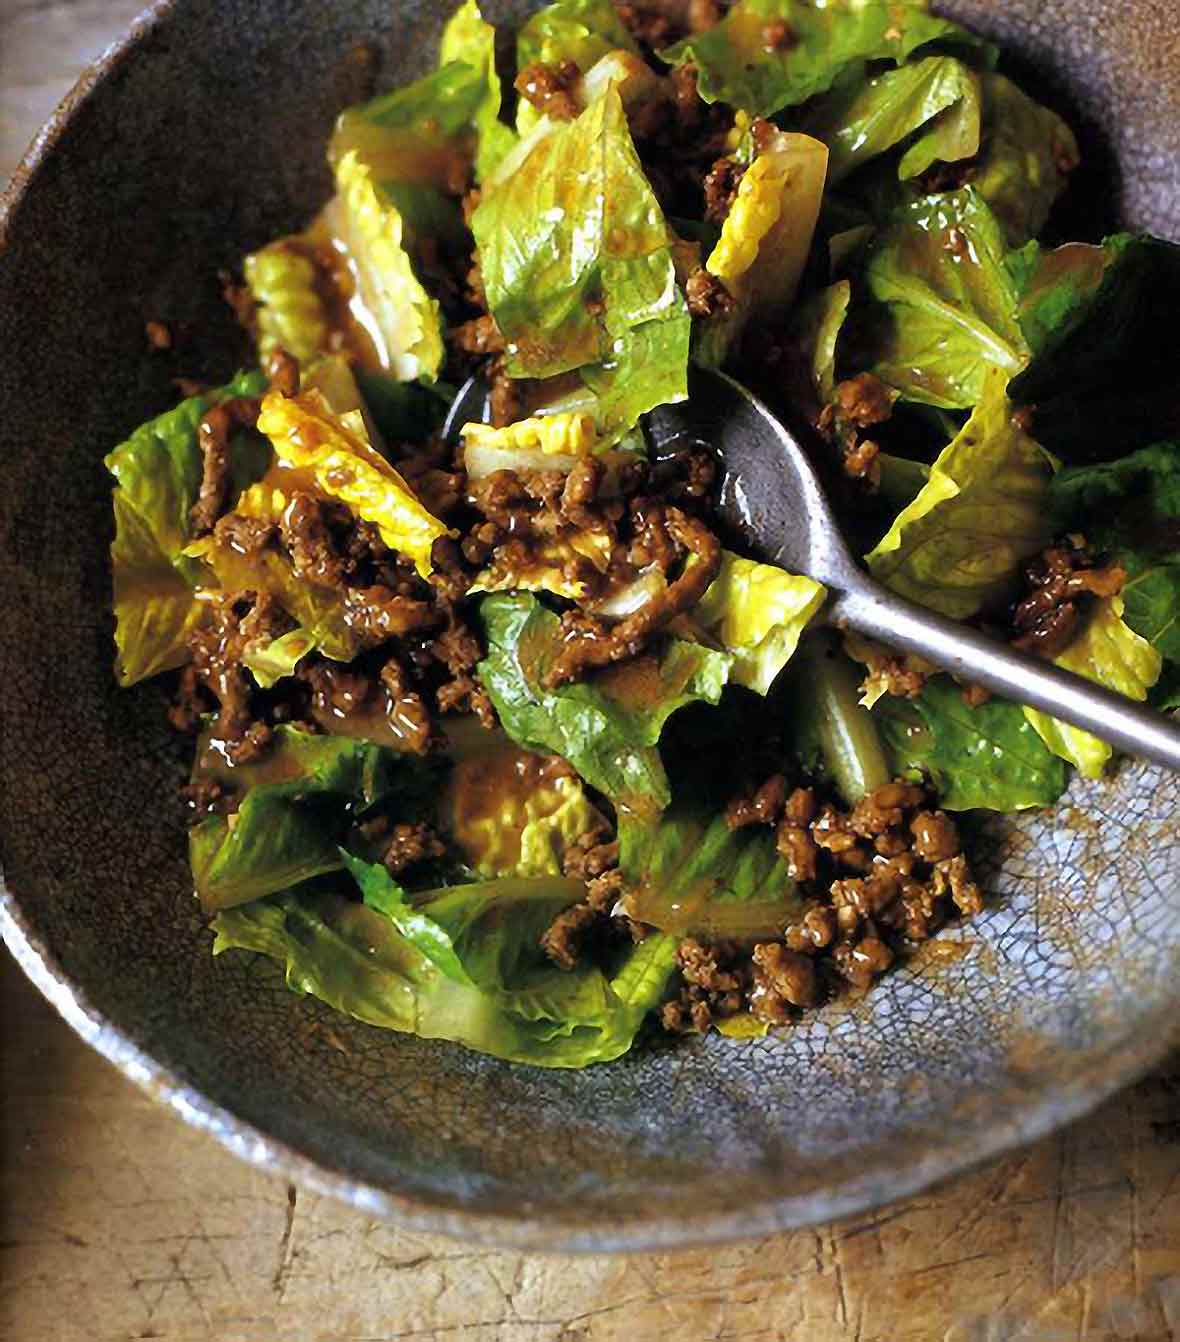 Ceramic bowl of romaine lettuce with hot beef dressing, garlic, and ginger